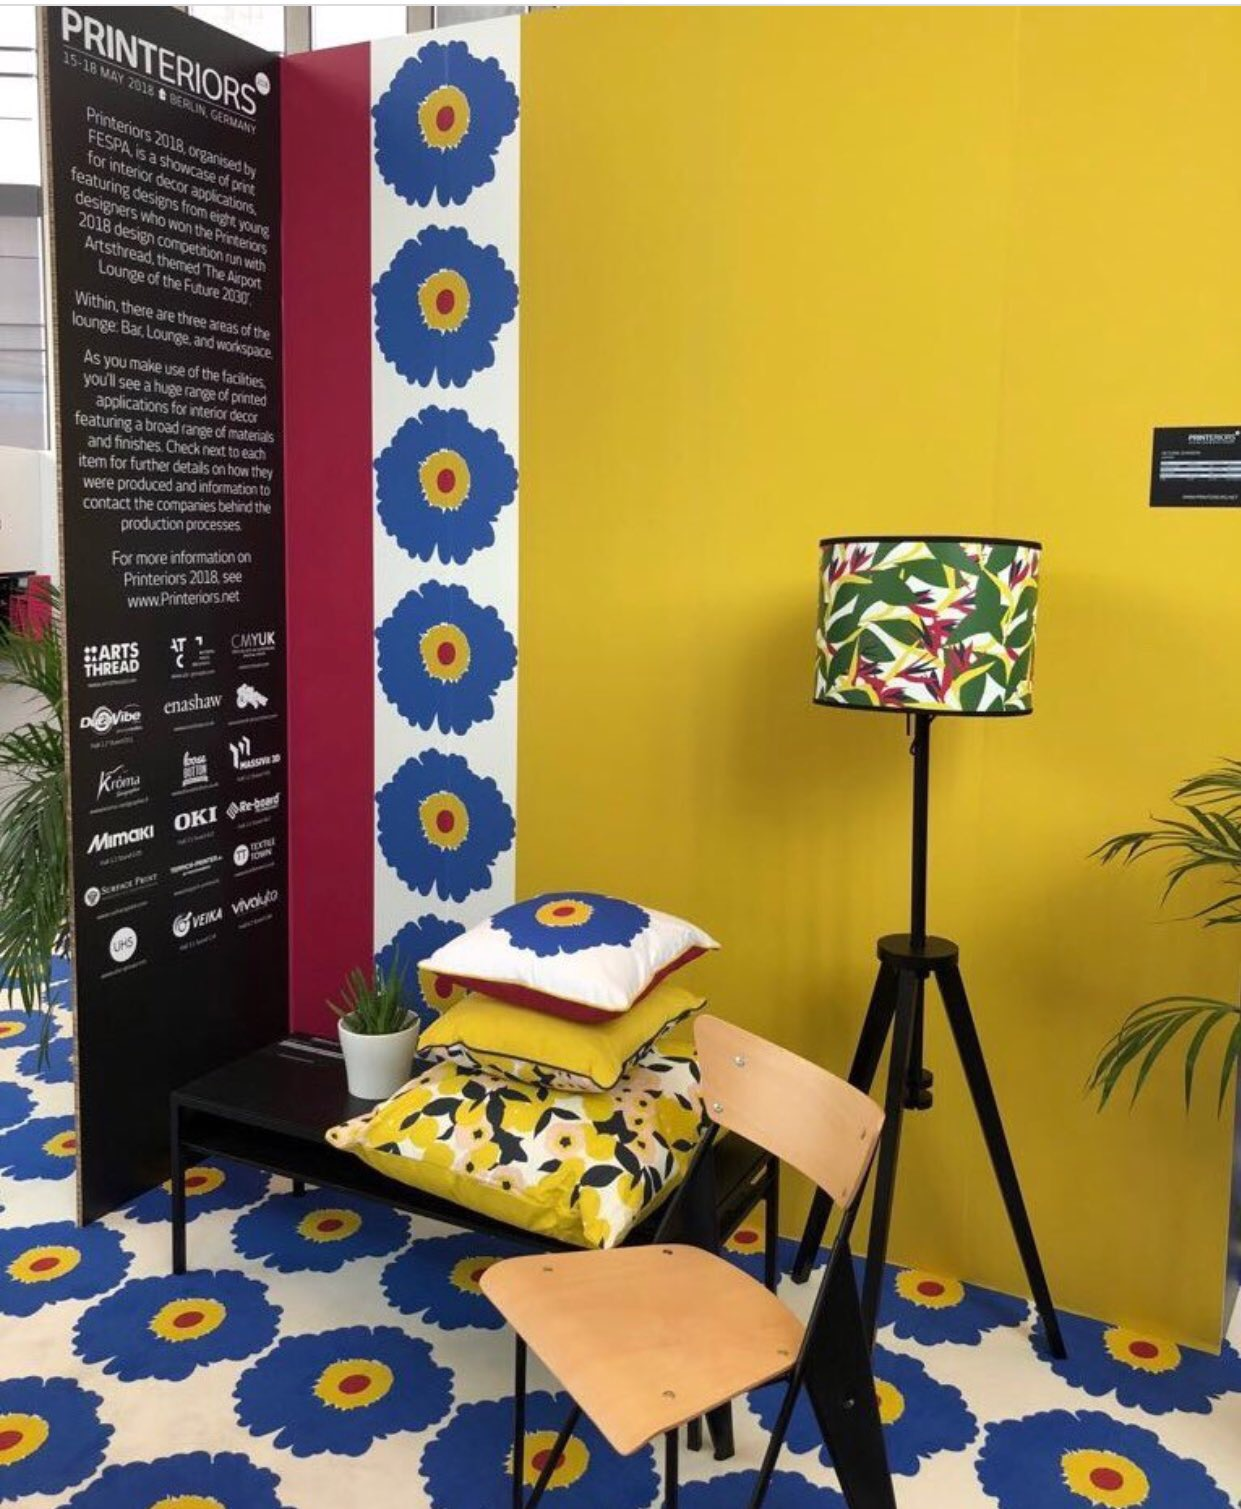 Cushions for FESPA 2018 - Over 60 cushions for the international print event in Berlin